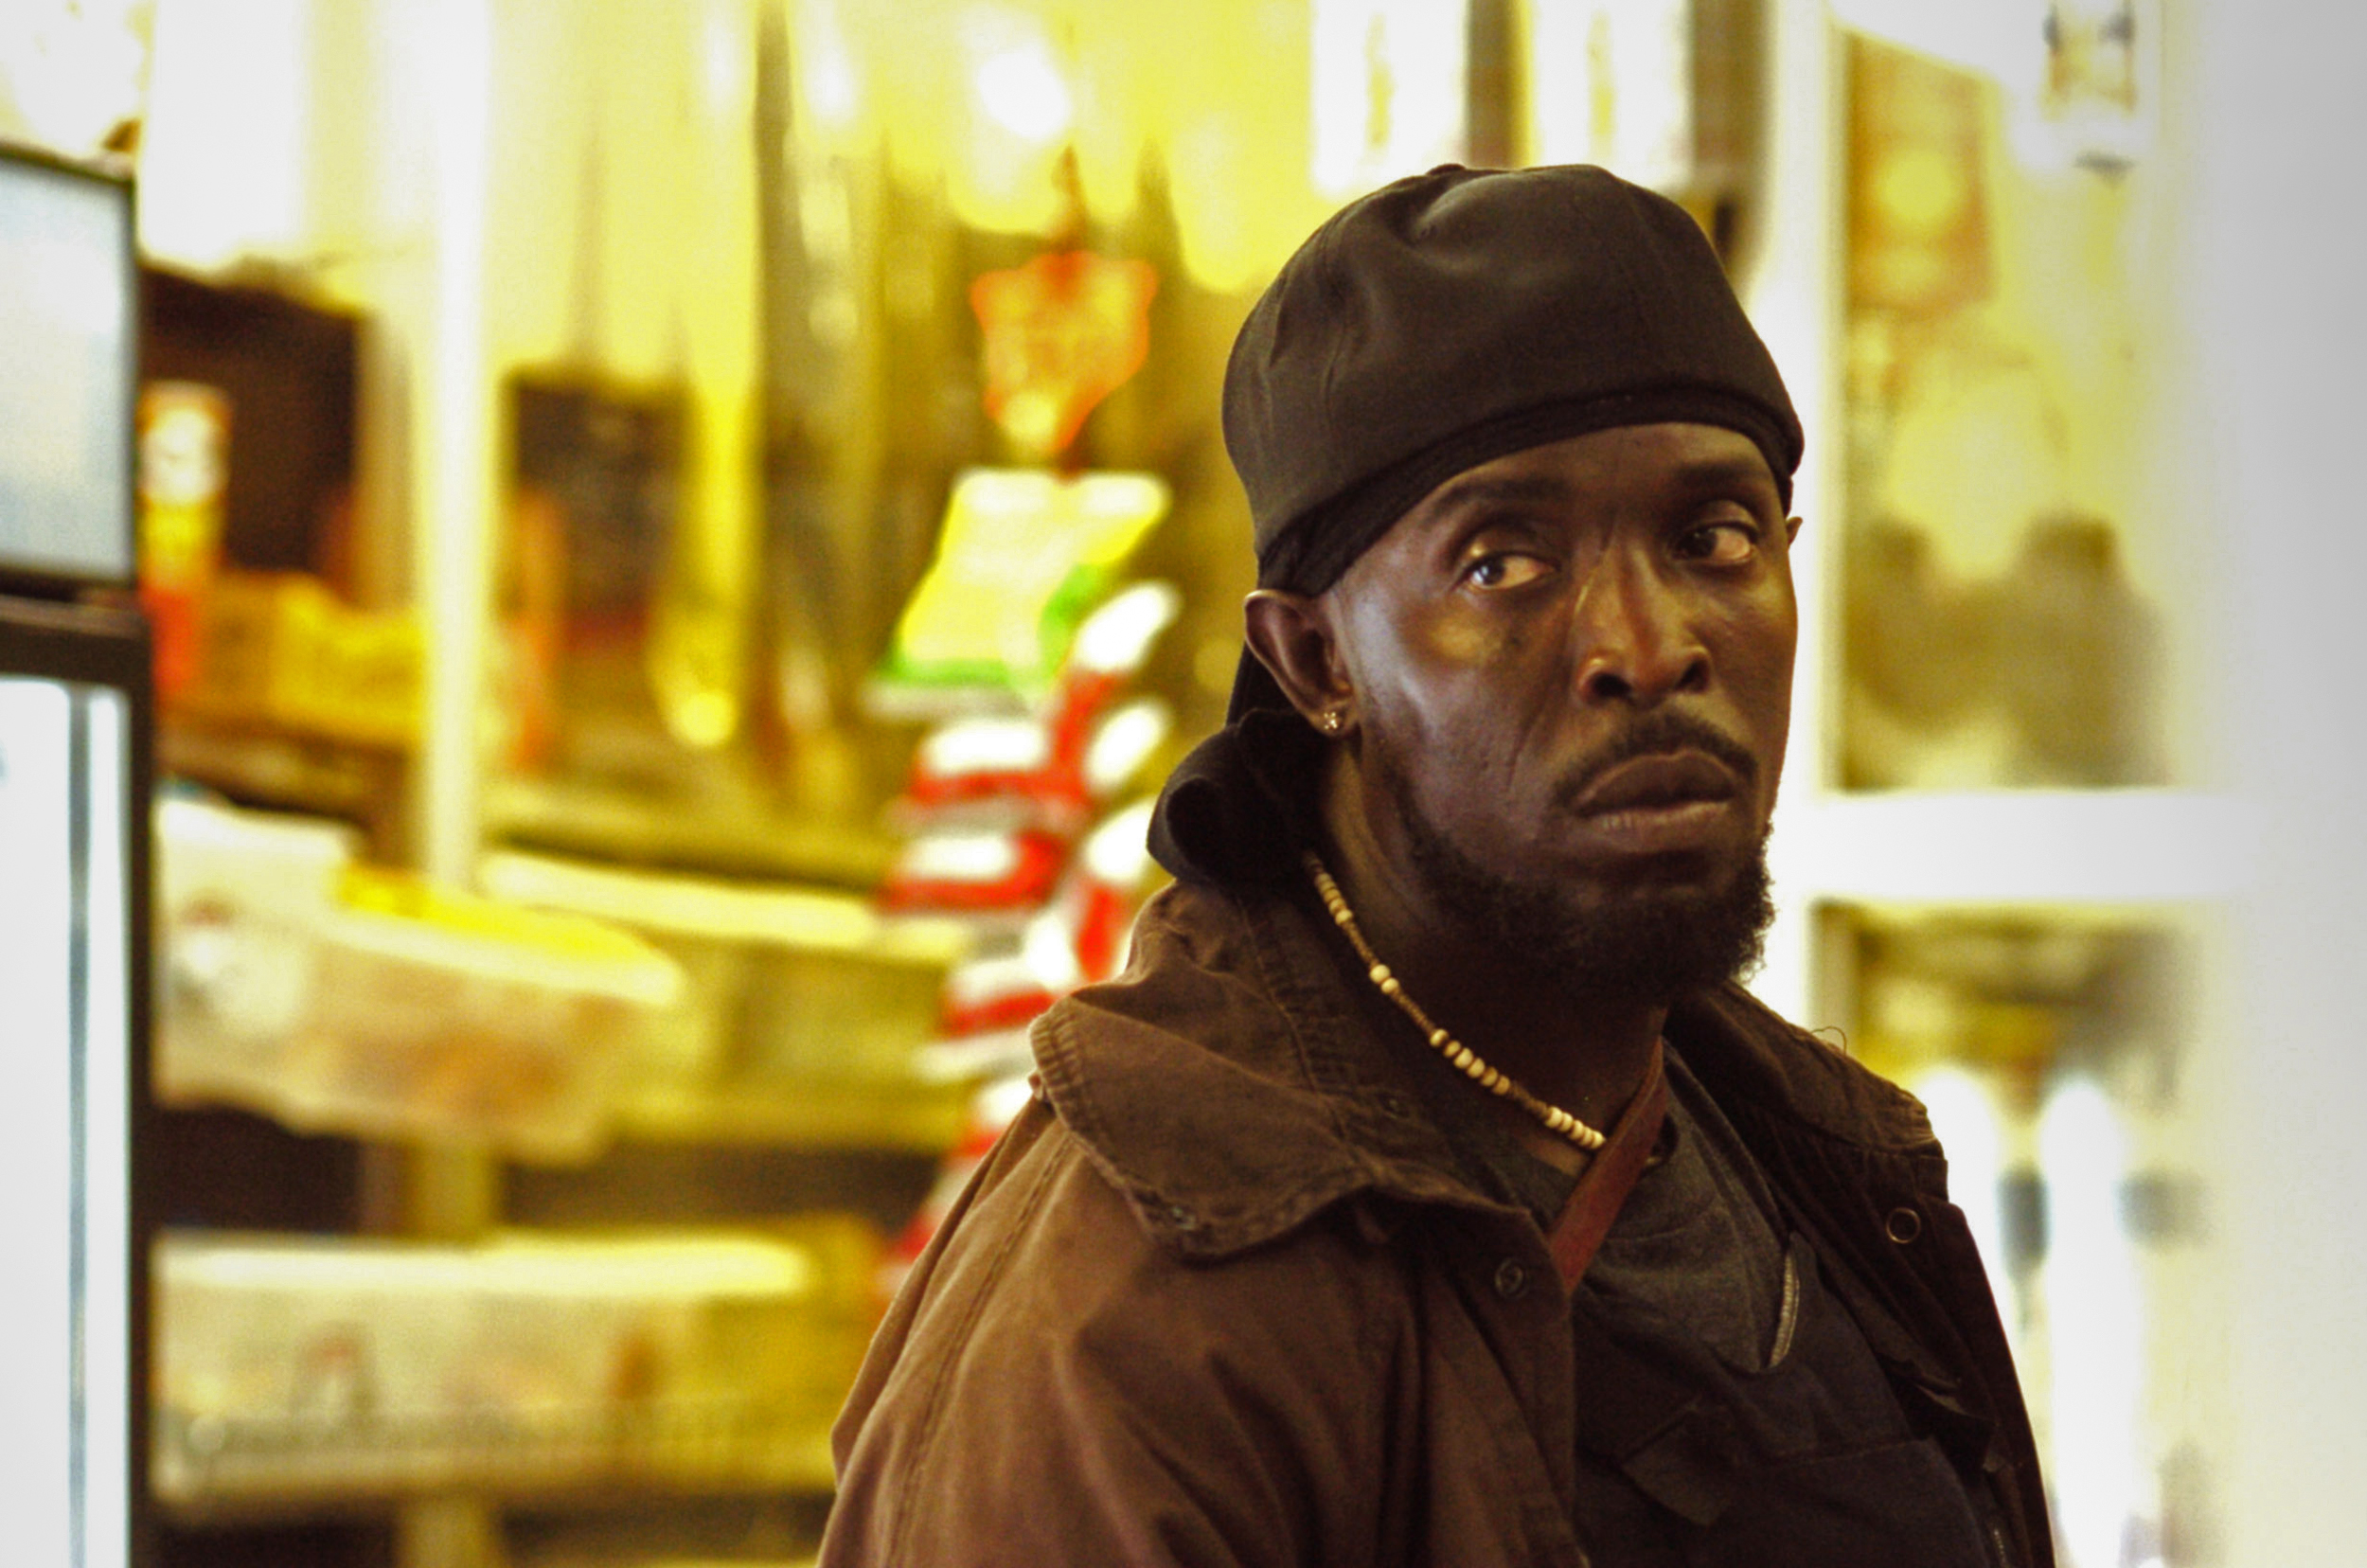 Gay Black men rarely saw themselves on screen. Michael K. Williams changed that.